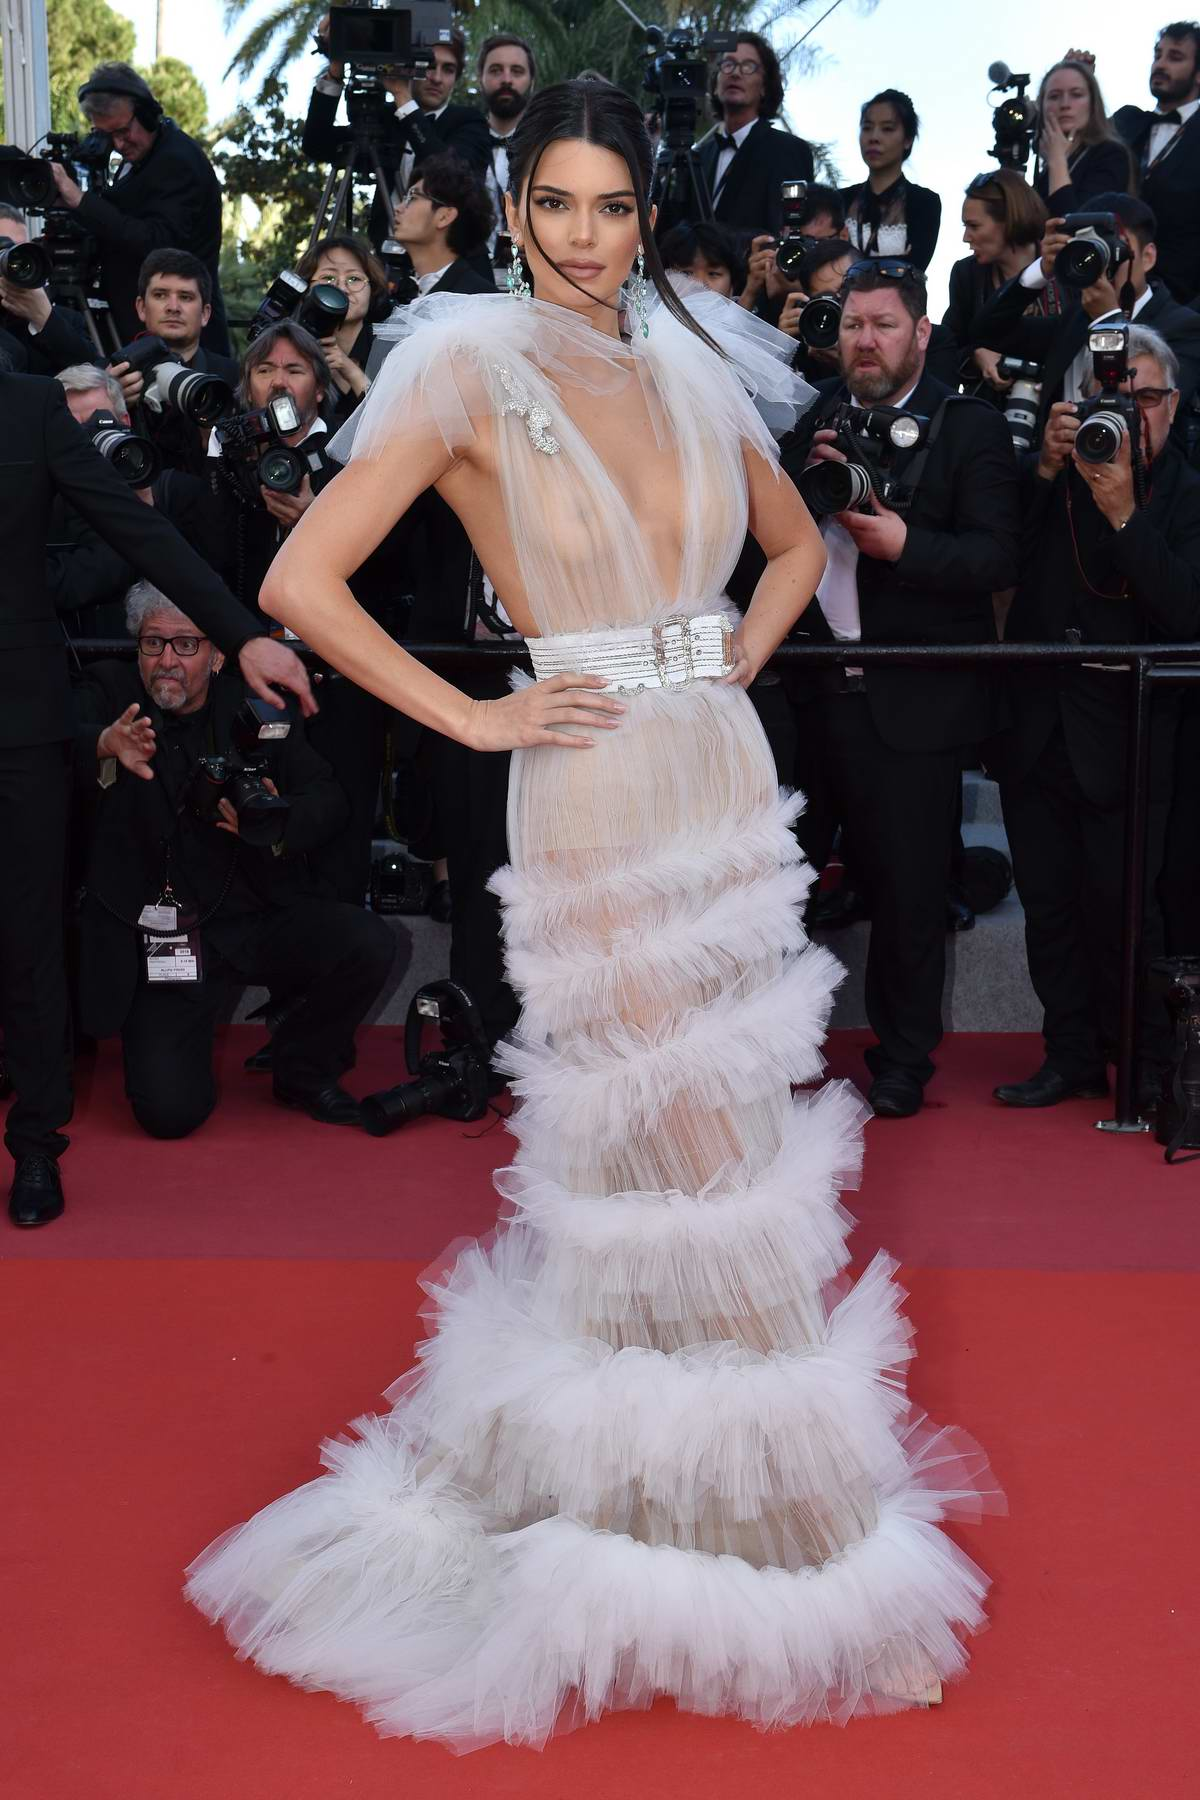 Kendall Jenner attends 'Girls Of The Sun' premiere during 71st Annual Cannes Film Festival in Cannes, France